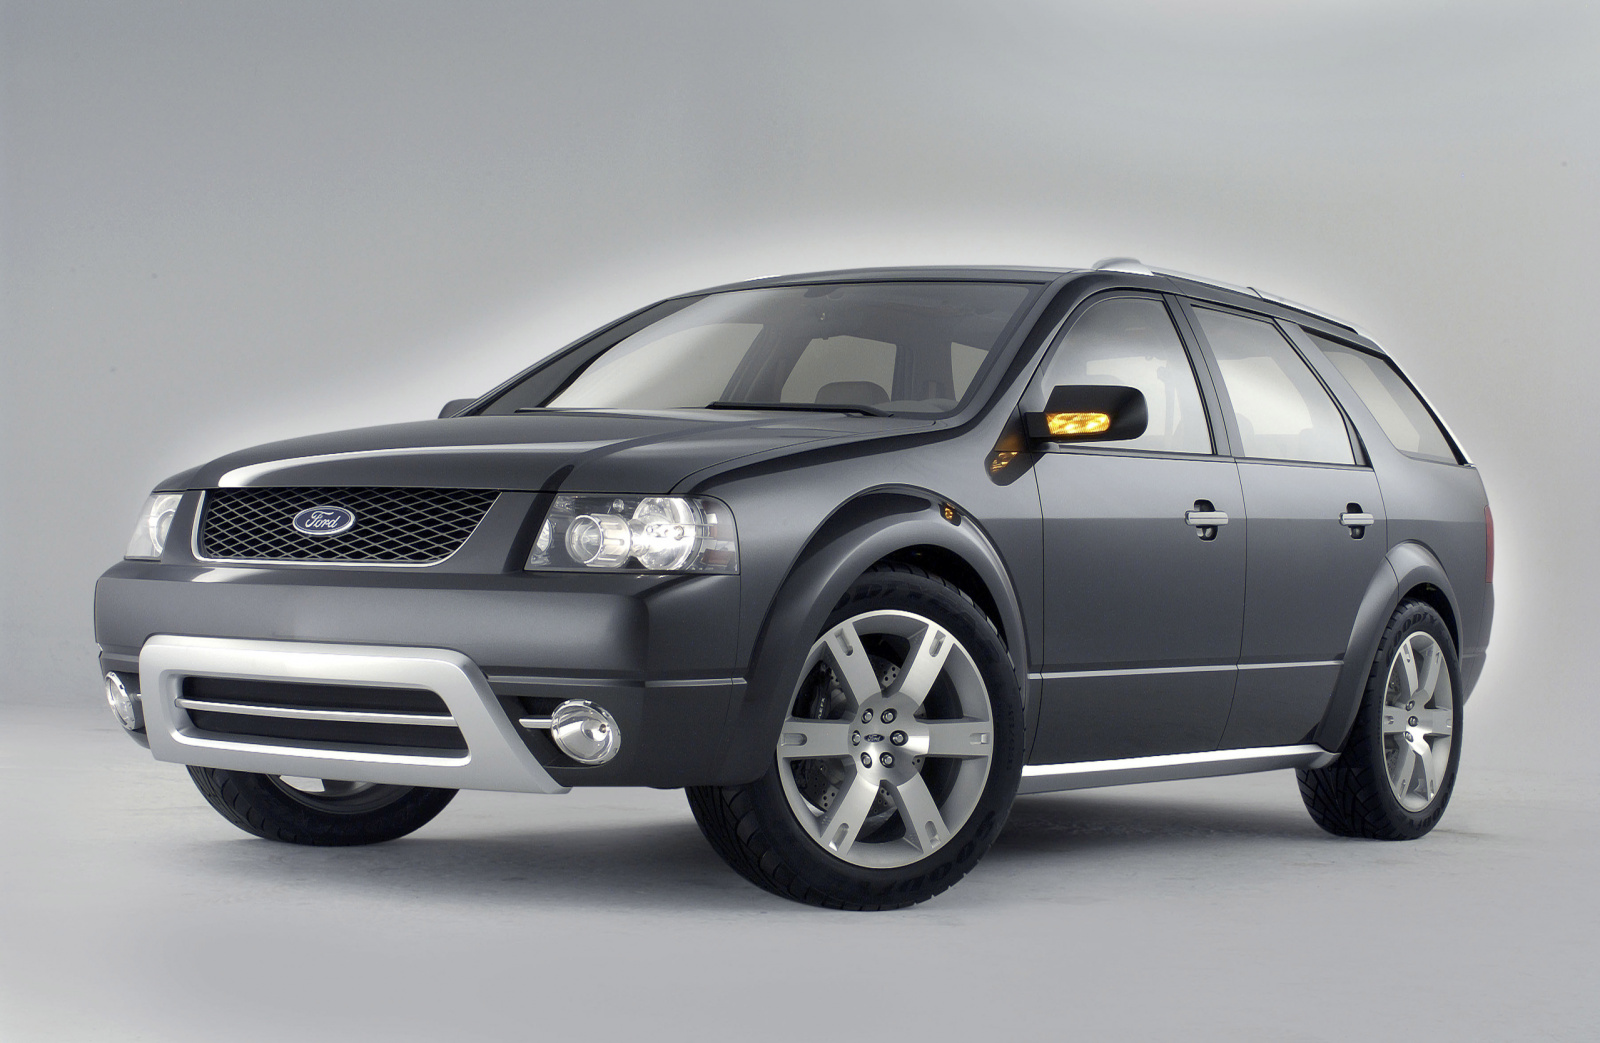 Ford Freestyle Fx Concept - Foto eines Ford Concept-Cars